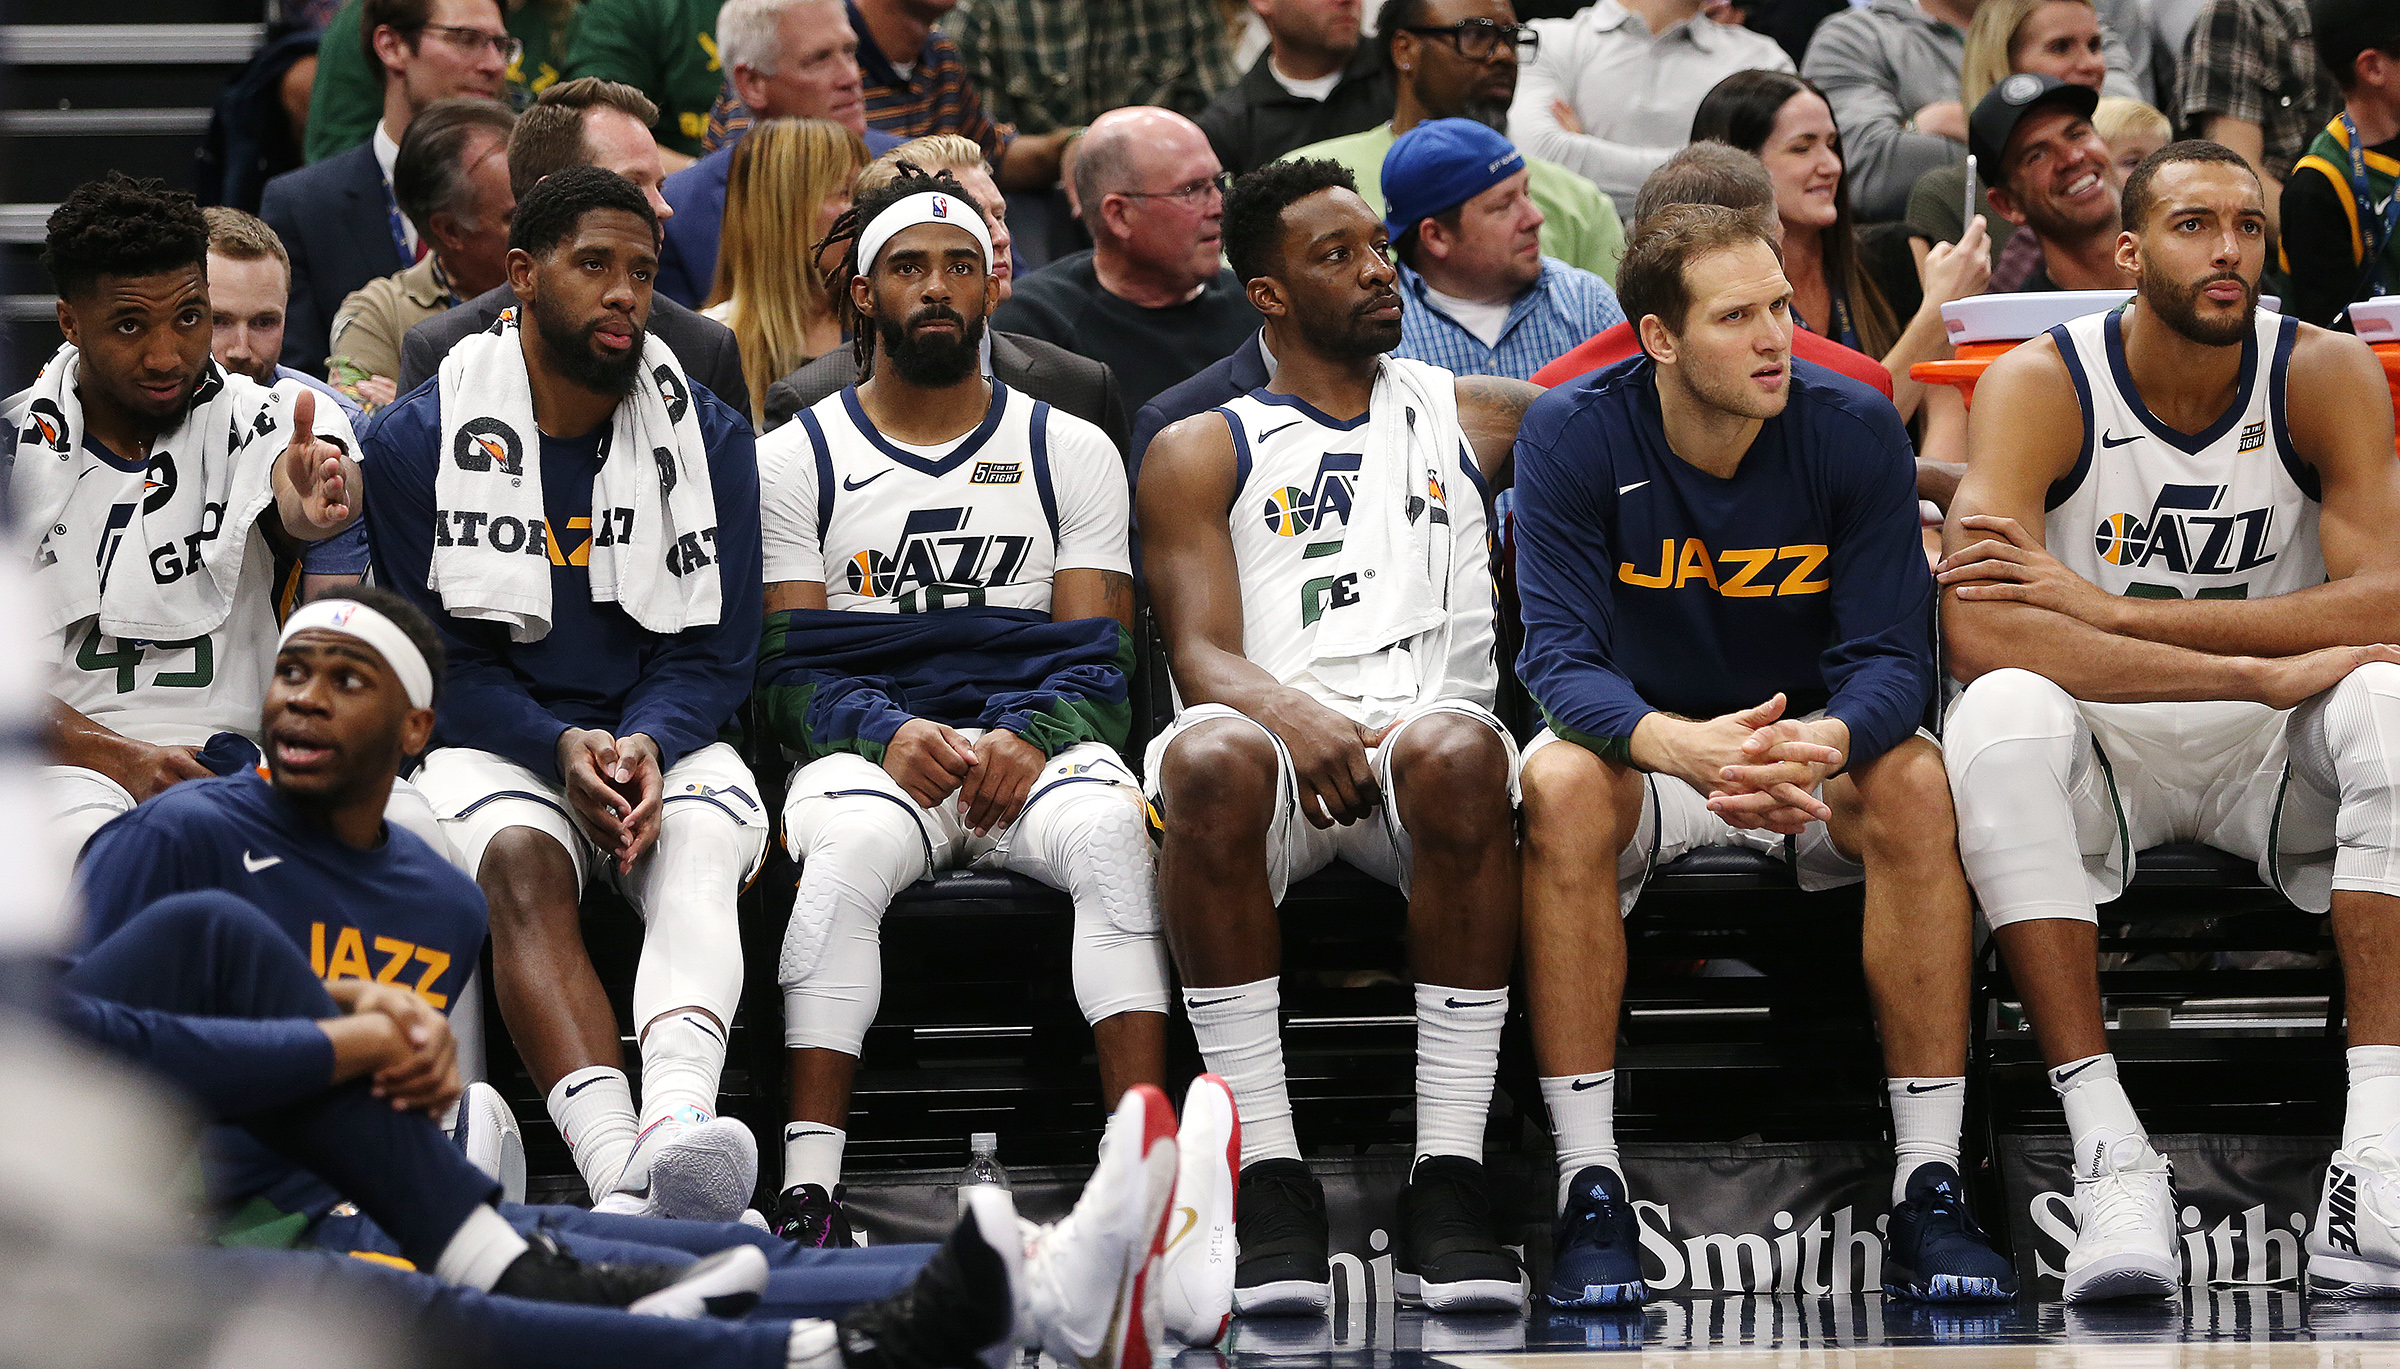 Utah Jazz players watch from the bench during a preseason game with the Portland Trail Blazers at Vivint Smart Home Arena in Salt Lake City on Wednesday, Oct. 16, 2019. Portland won 126-118.